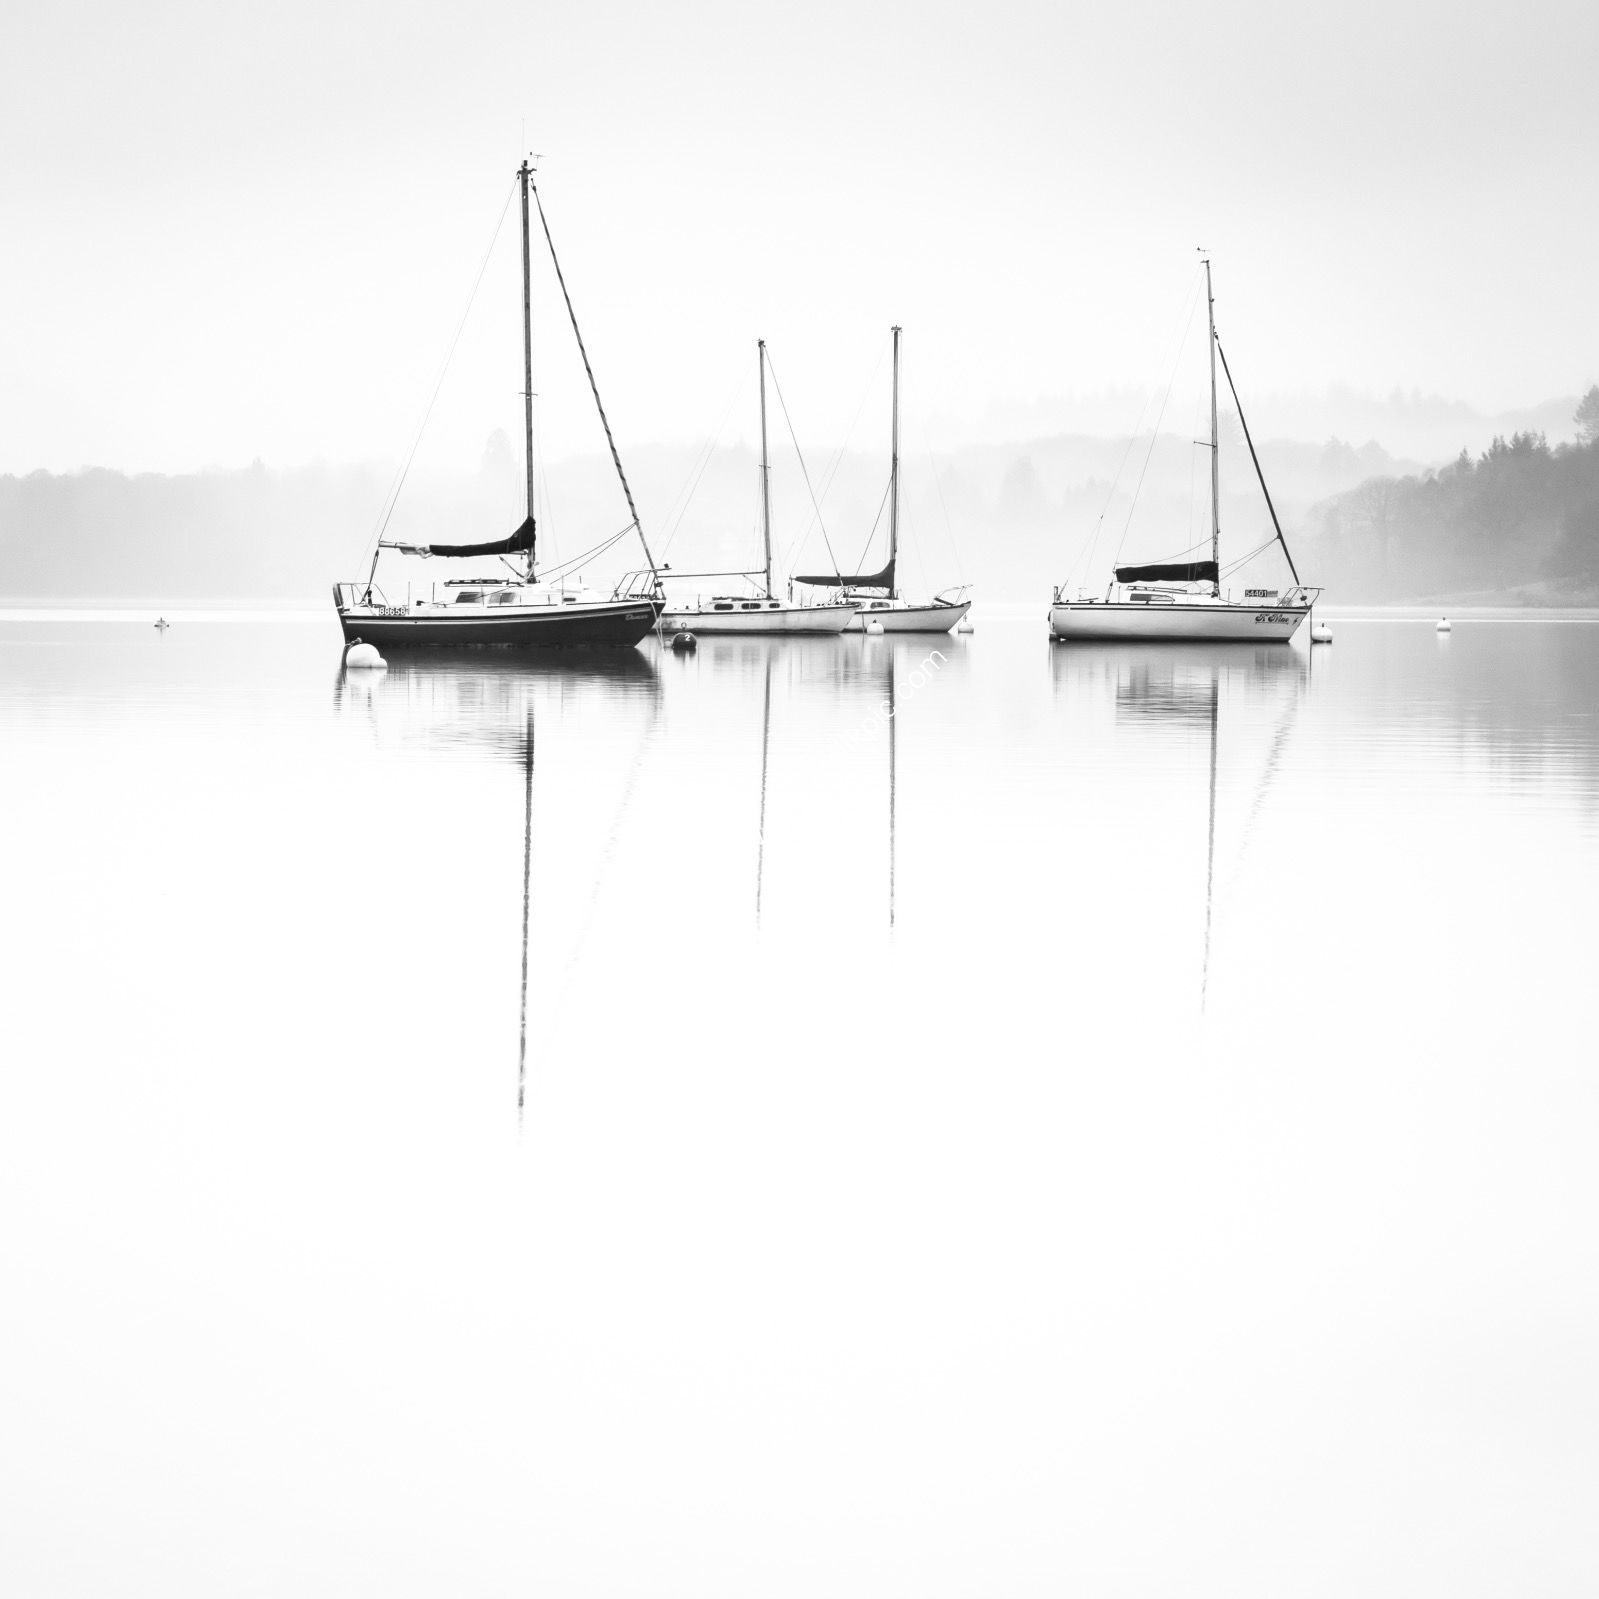 Boats mist on Windermere